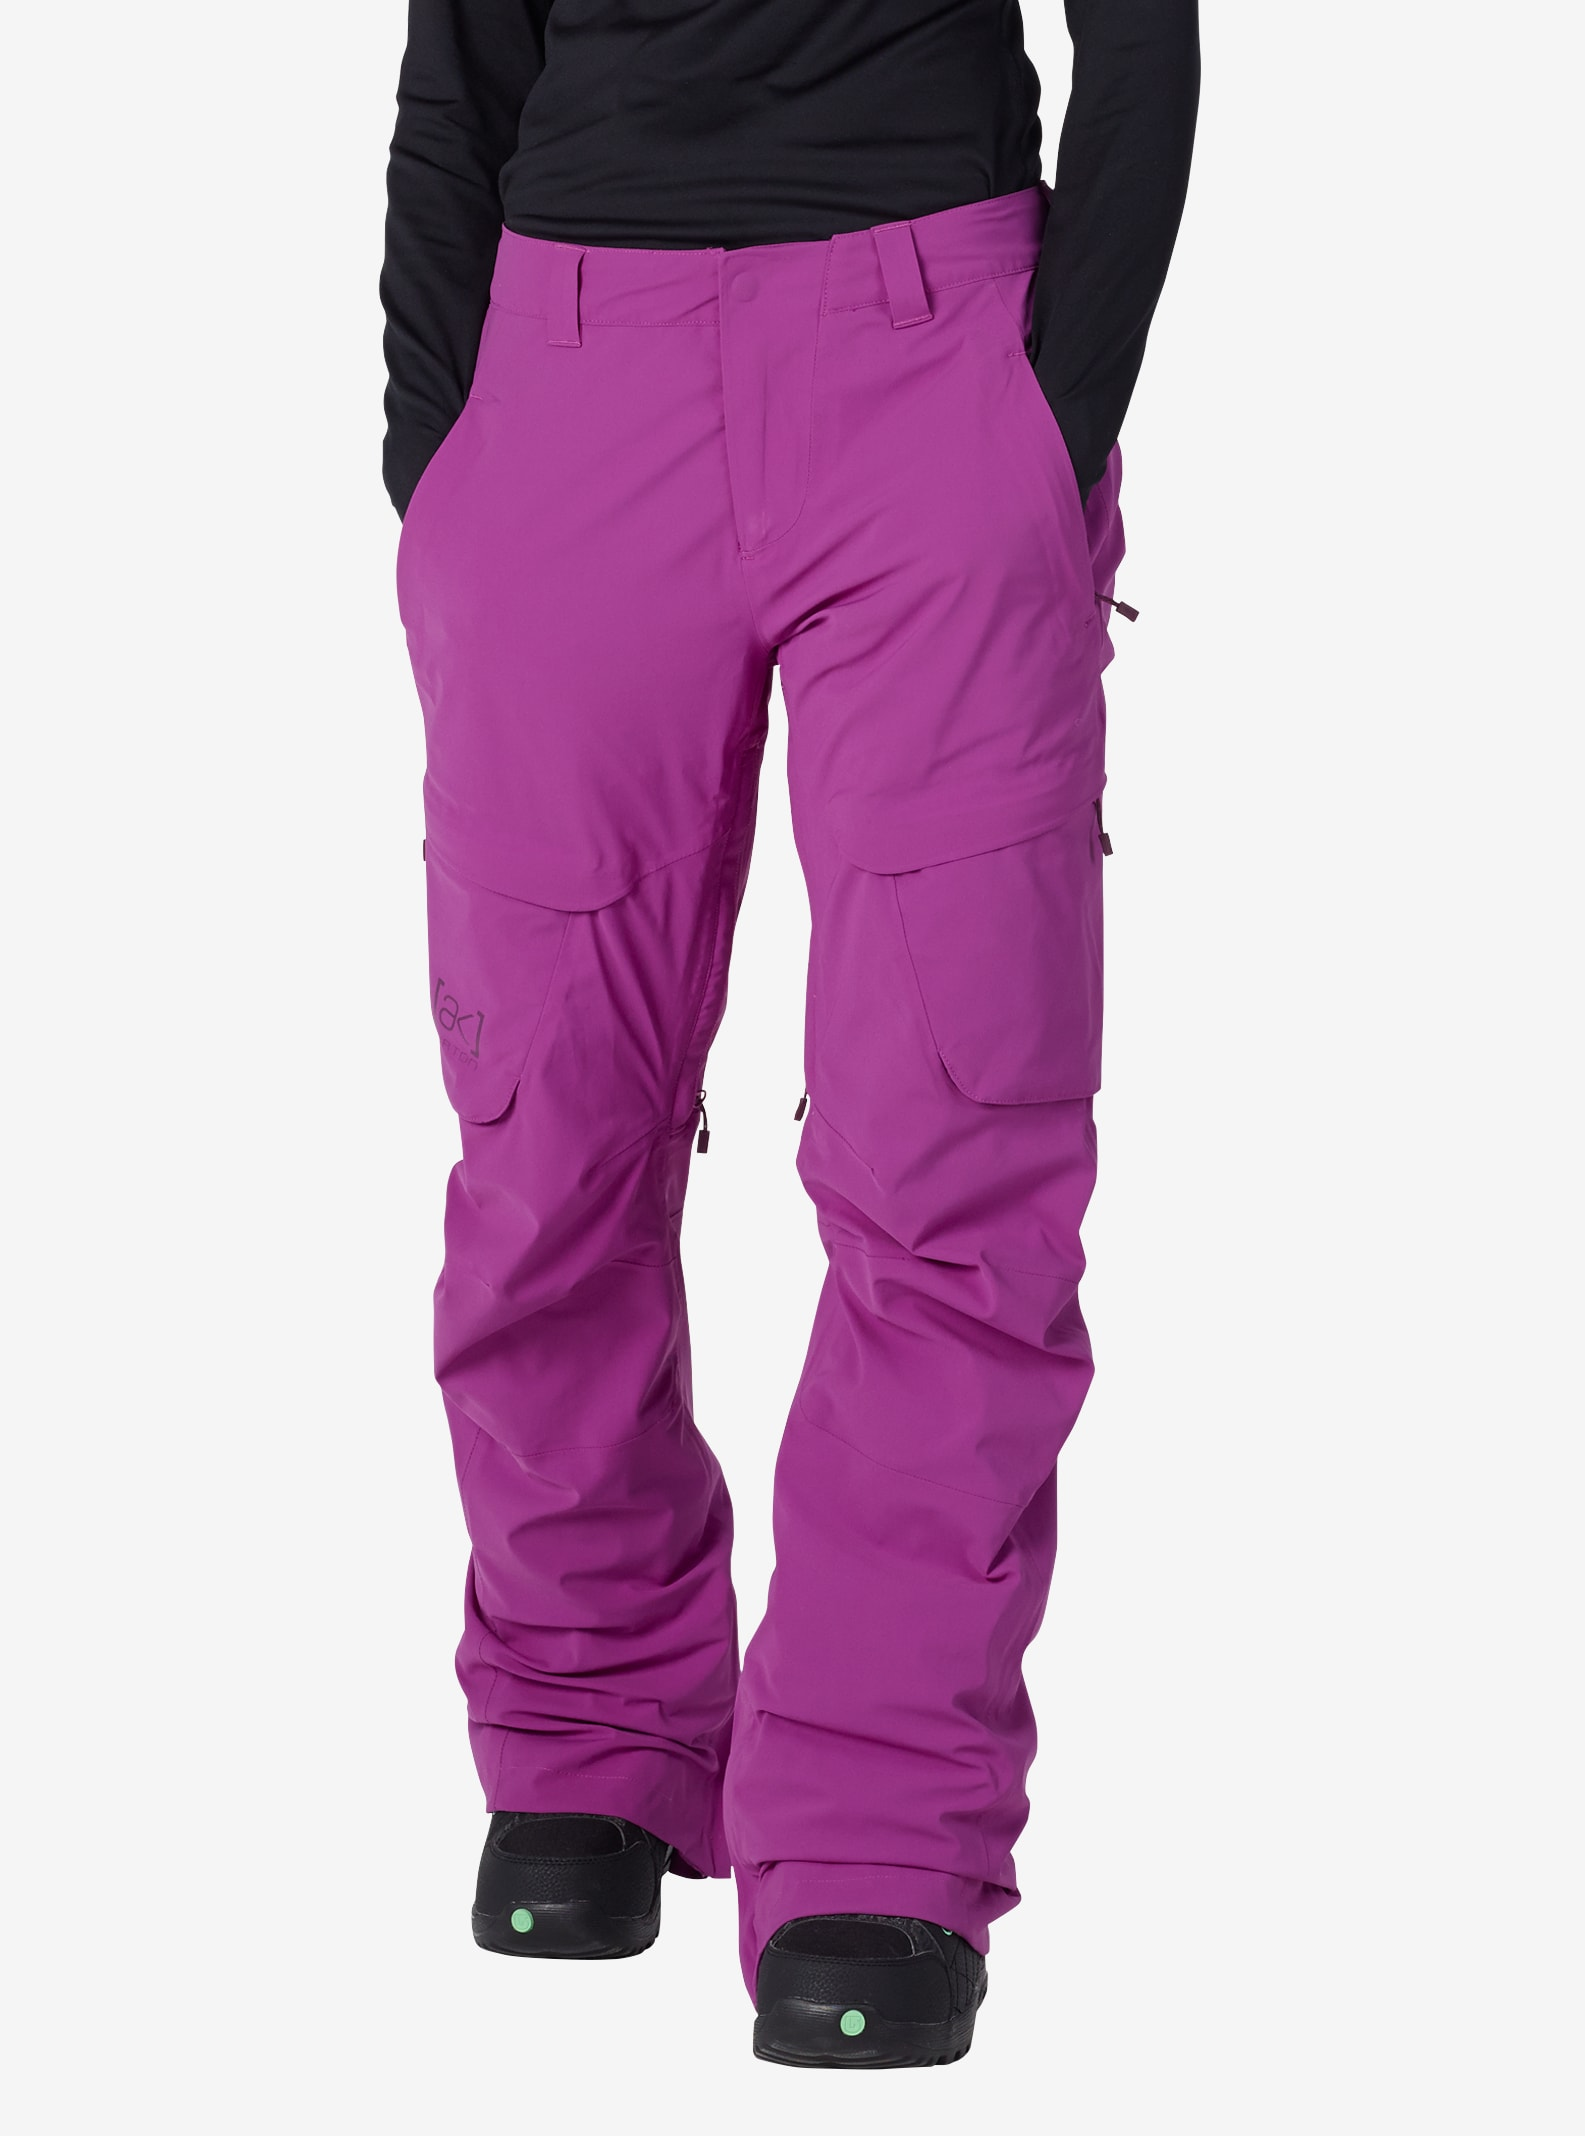 Women's Burton [ak] GORE‑TEX® Summit Pant shown in Grapeseed